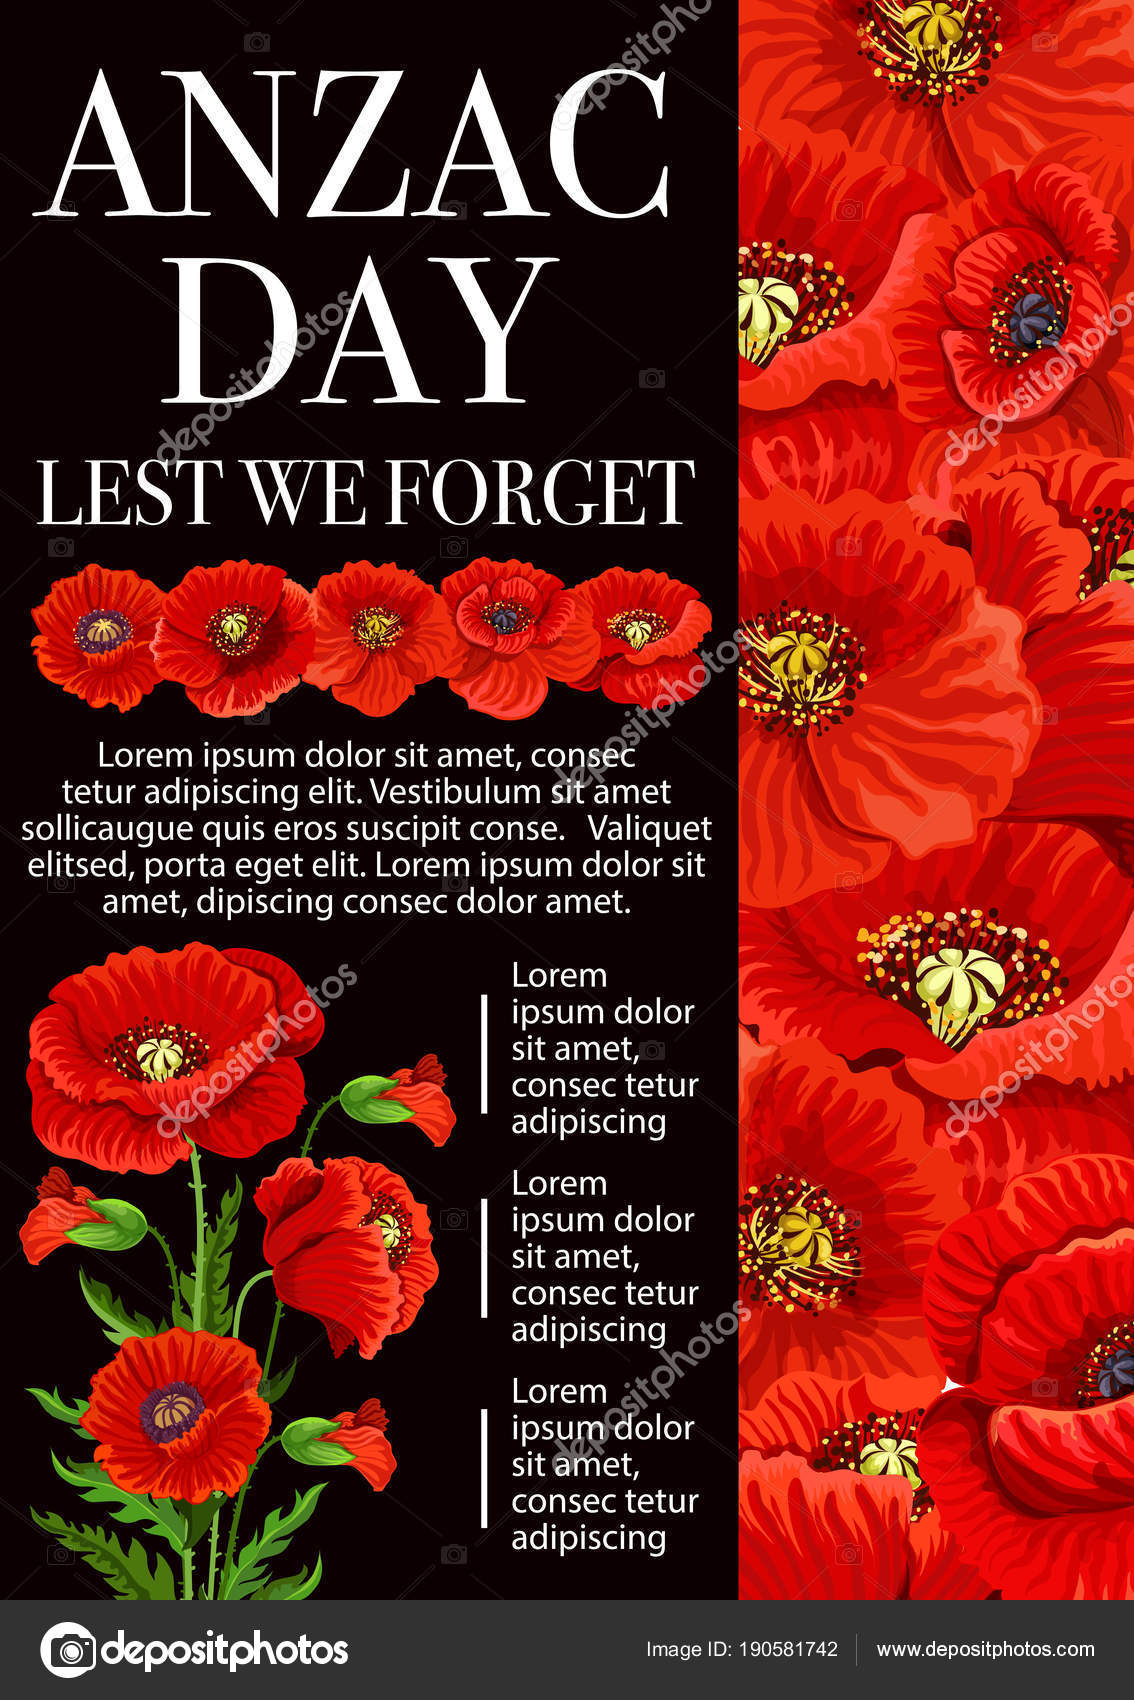 Anzac Day Poppy Flower For Lest We Forget Banner Stock Vector